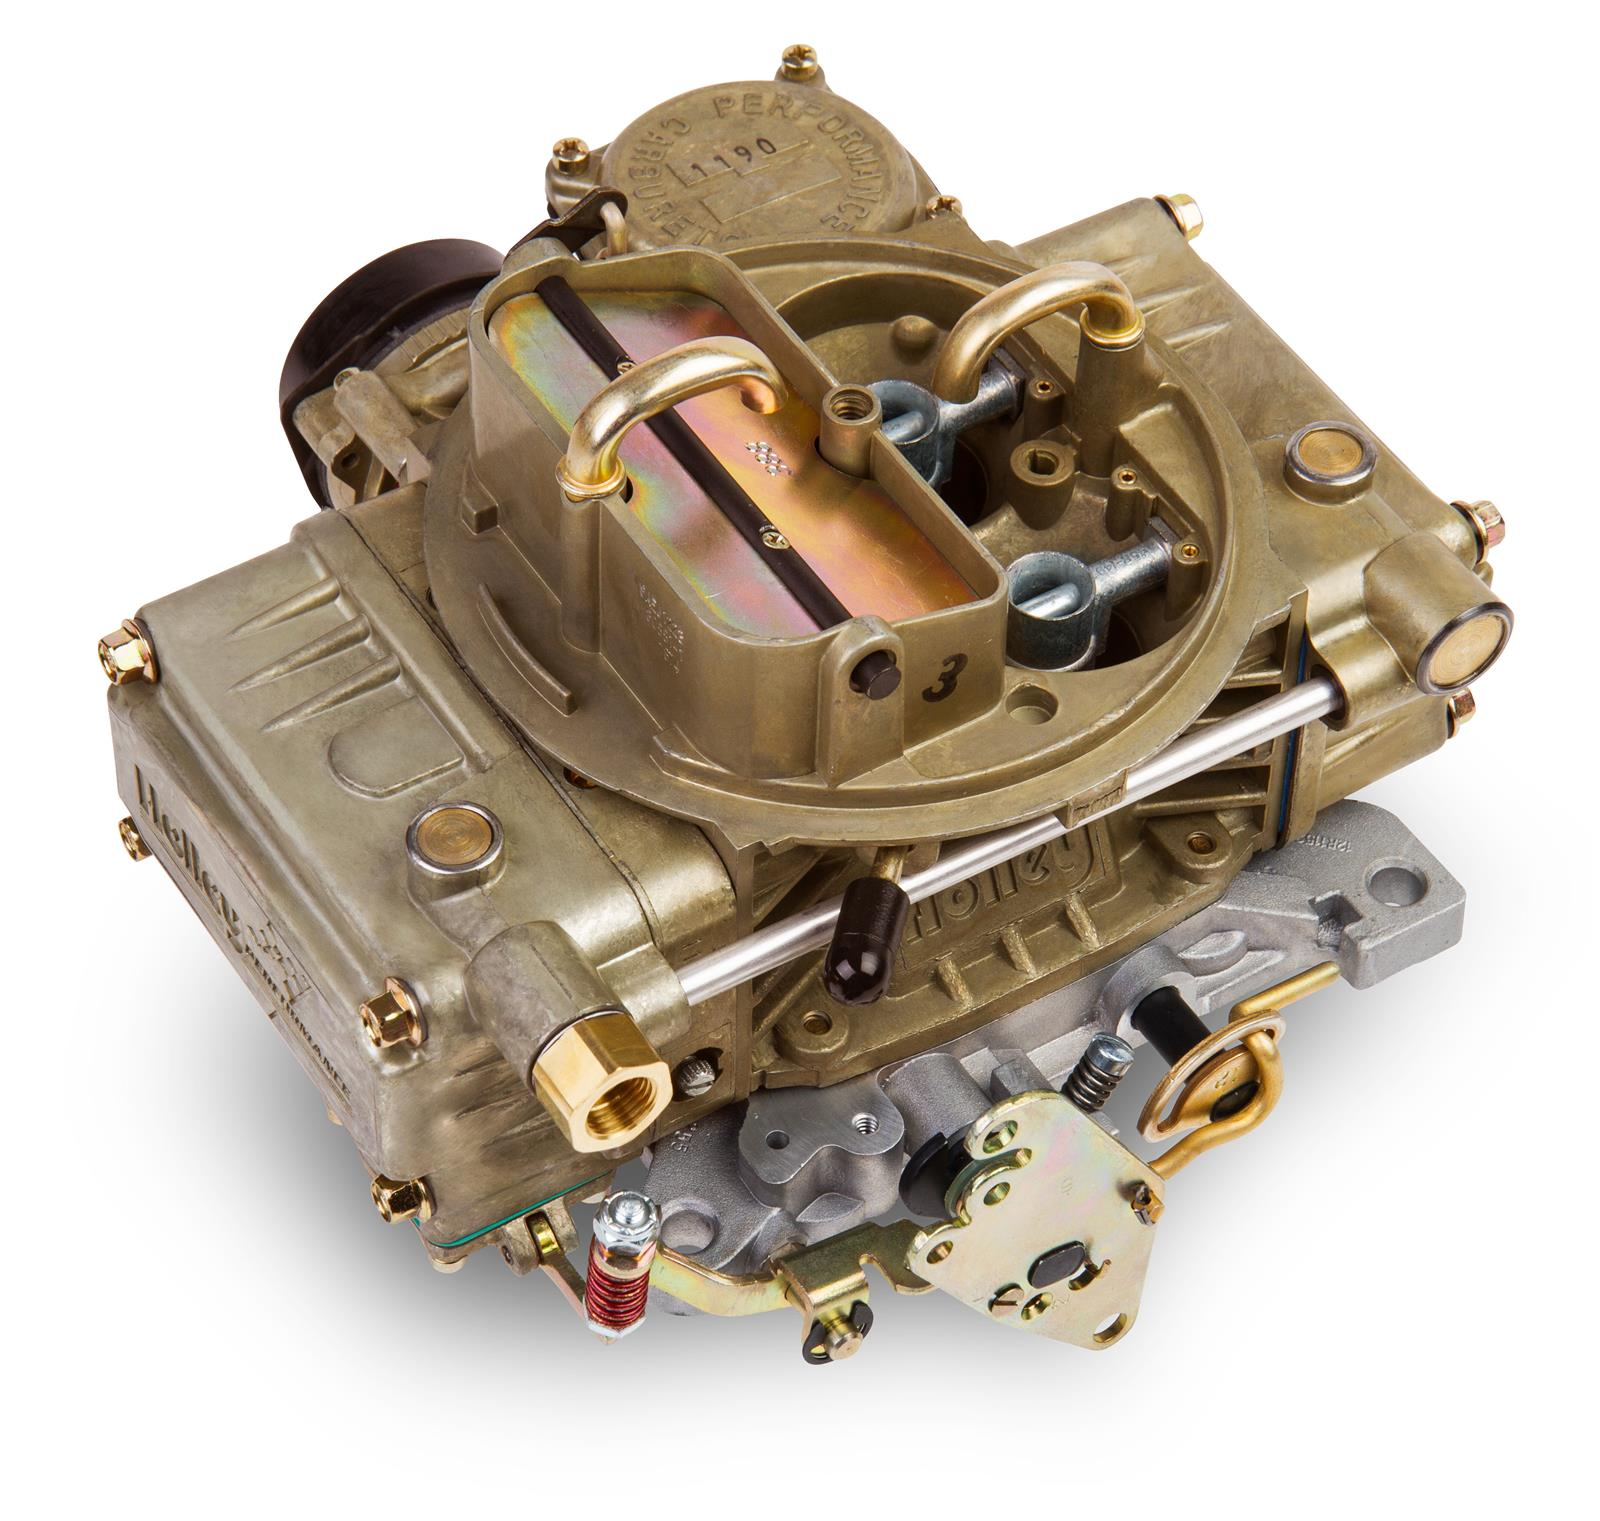 Holley 4160 Marine Carburetors 0-80551 - Free Shipping on Orders ...